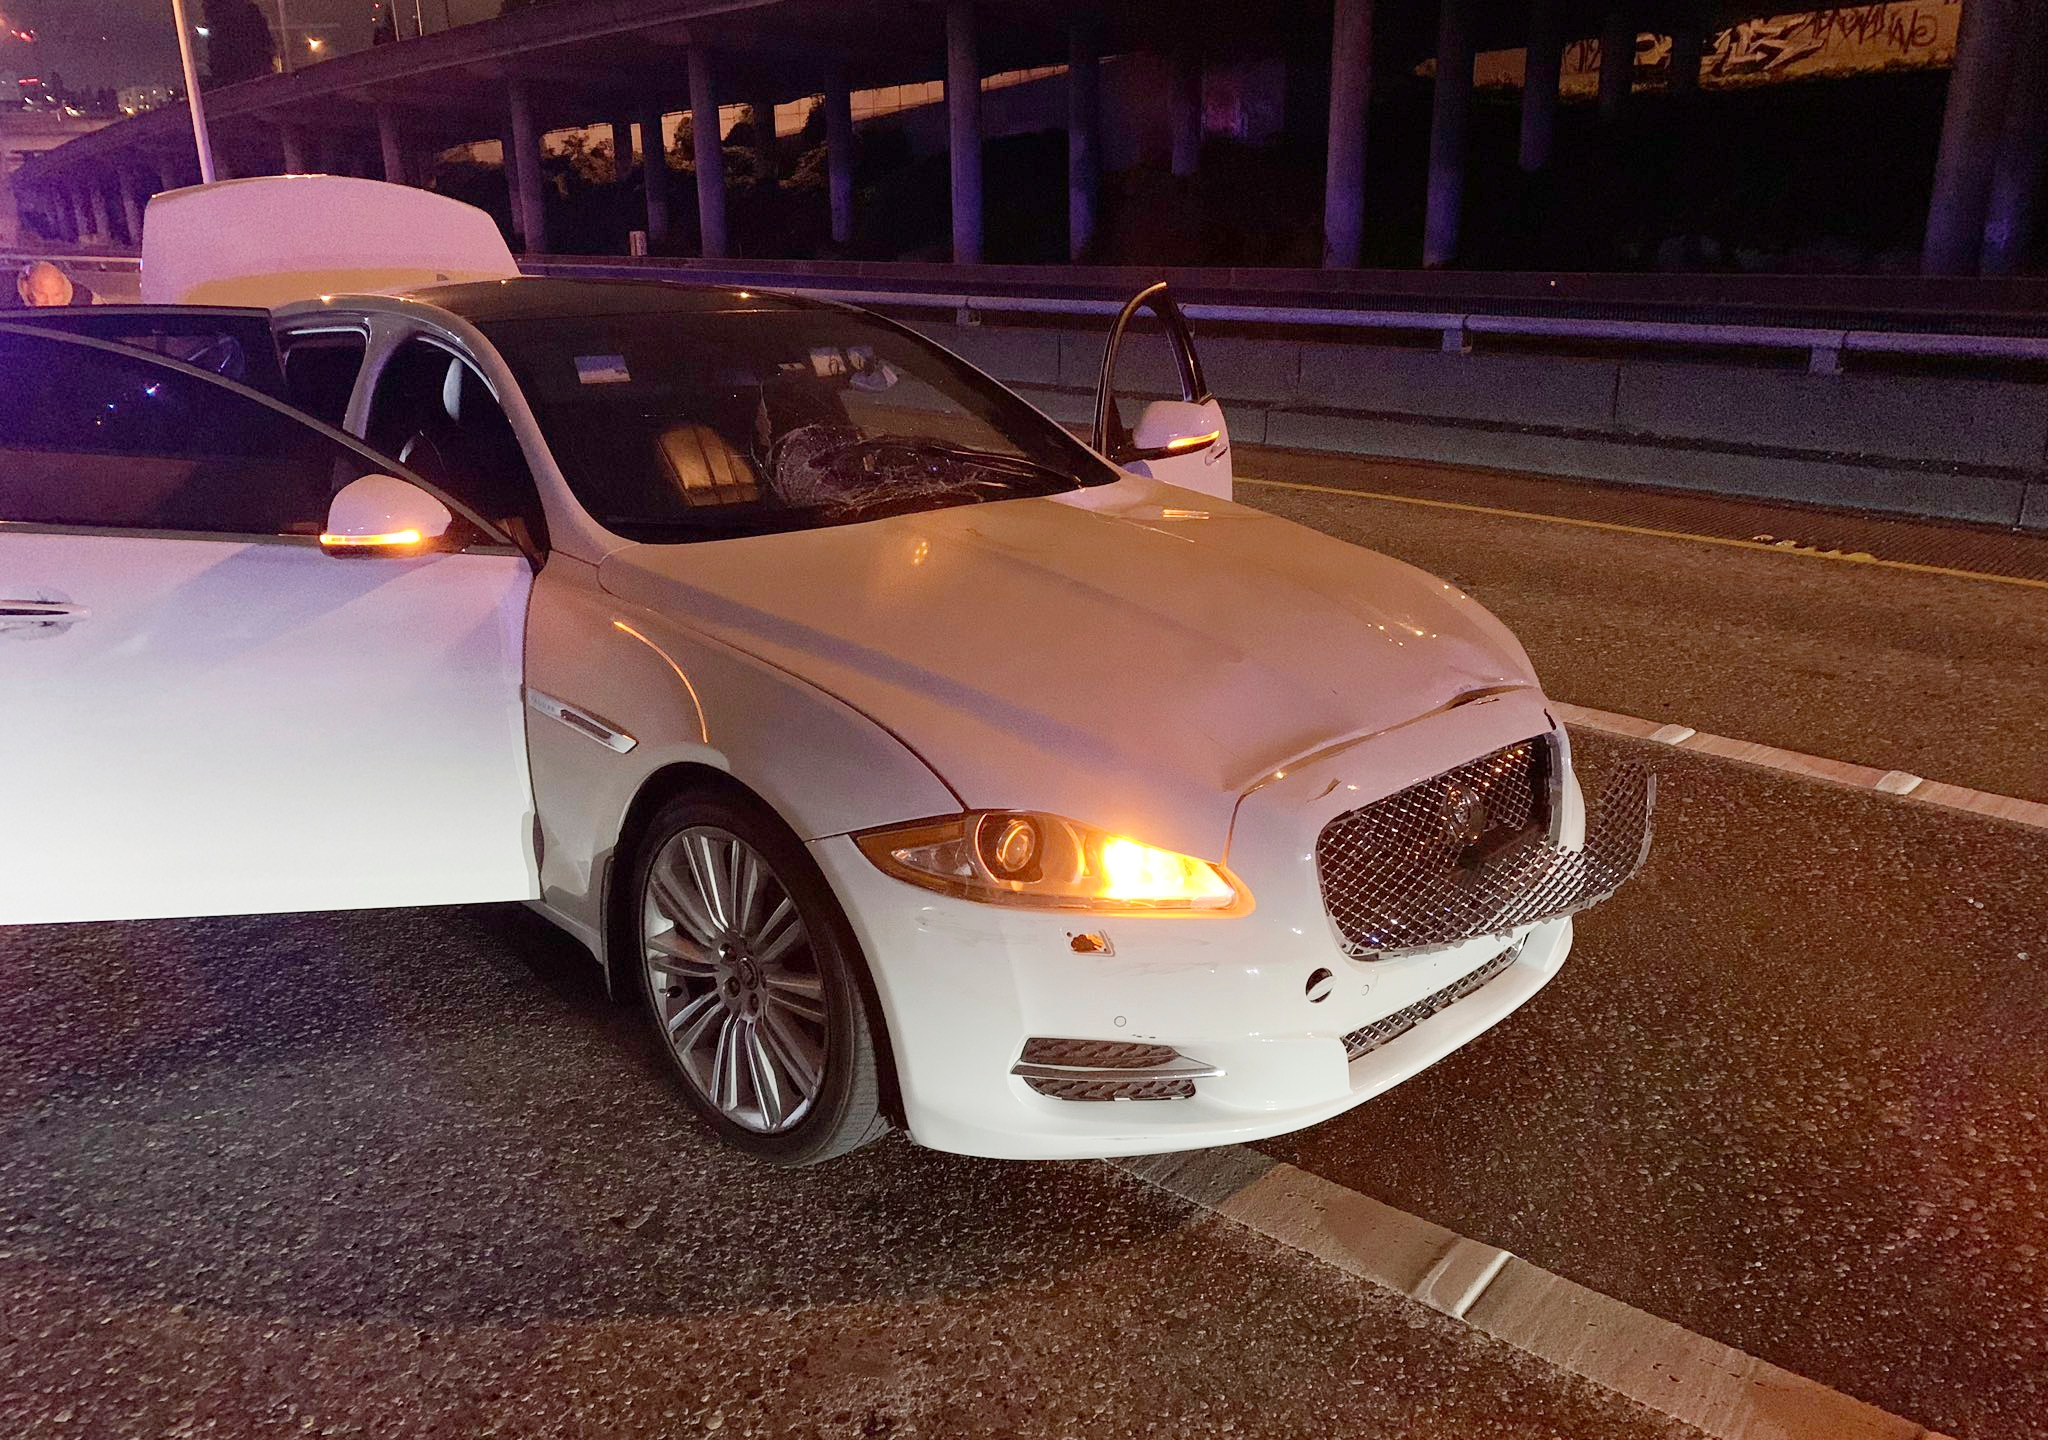 This early Saturday, July 4, 2020 photo provided by the Washington State Patrol shows the vehicle of Dawit Kelete who is suspected of driving into a protest on Interstate 5 in Seattle. (Washington State Patrol via AP)